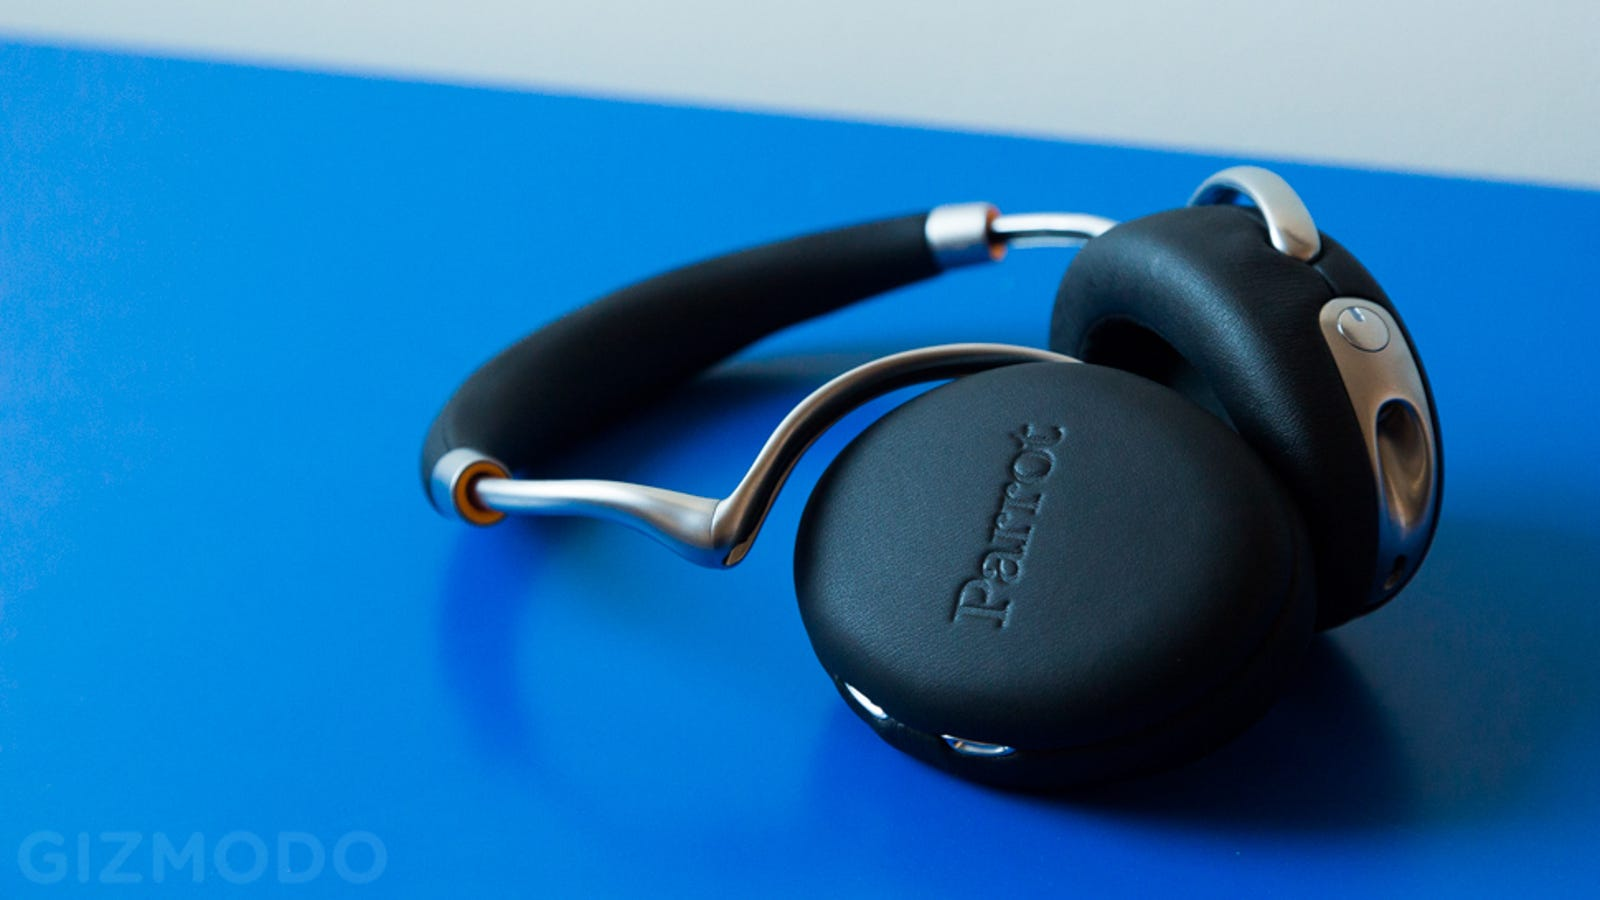 bluetooth headphones lightweight wireless - Parrot Zik 2.0 Hands-On: The World's Most Advanced Headphones? Maybe.